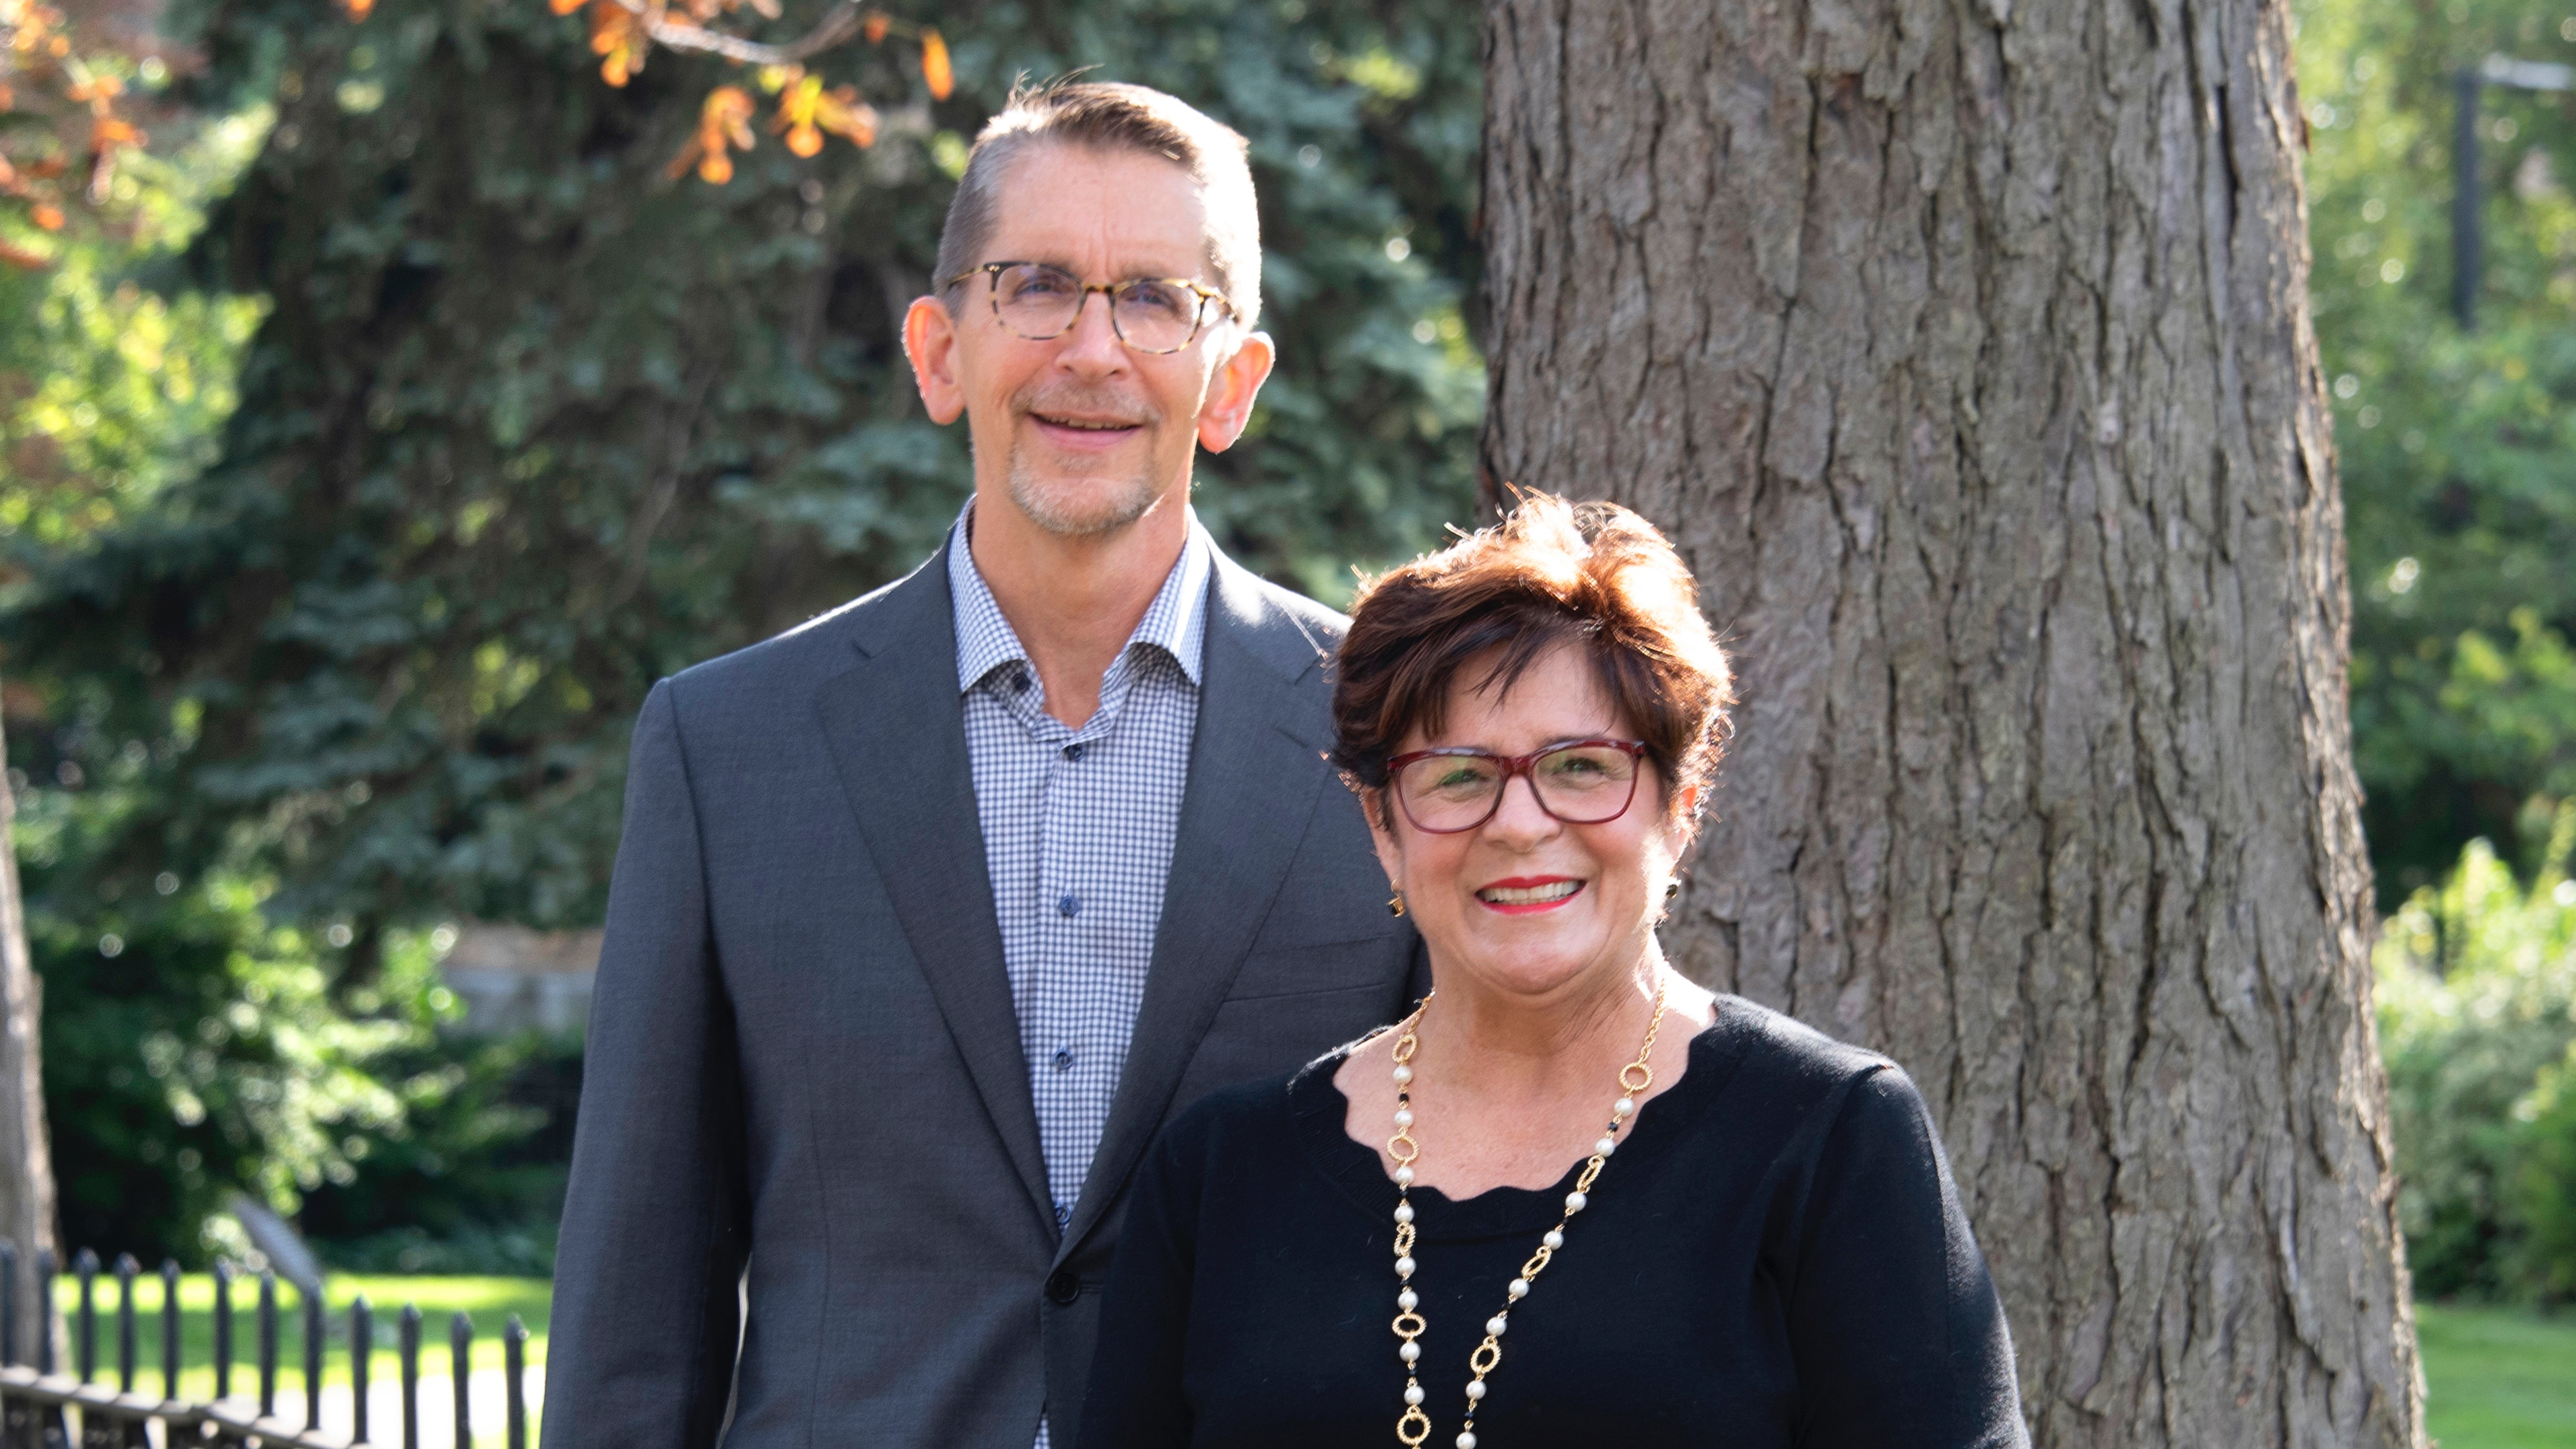 Q & A: Get To Know Our Campaign Co-Chairs Debbie Hayes and Keith Stolzenburg Image